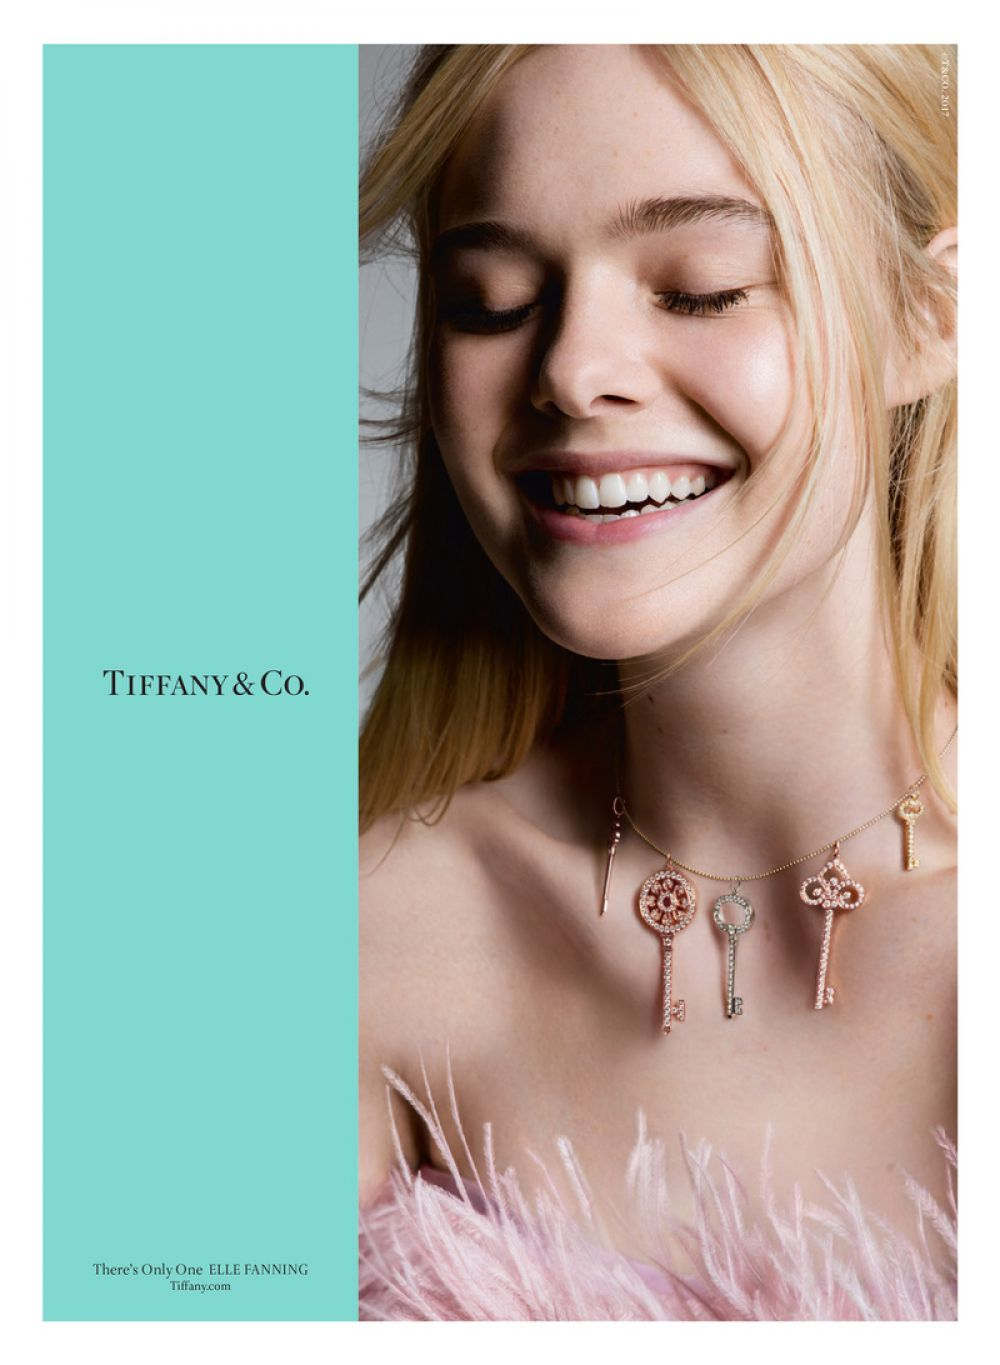 ELLE FANNING for Tiffany & Co Fall Campaign July 2017